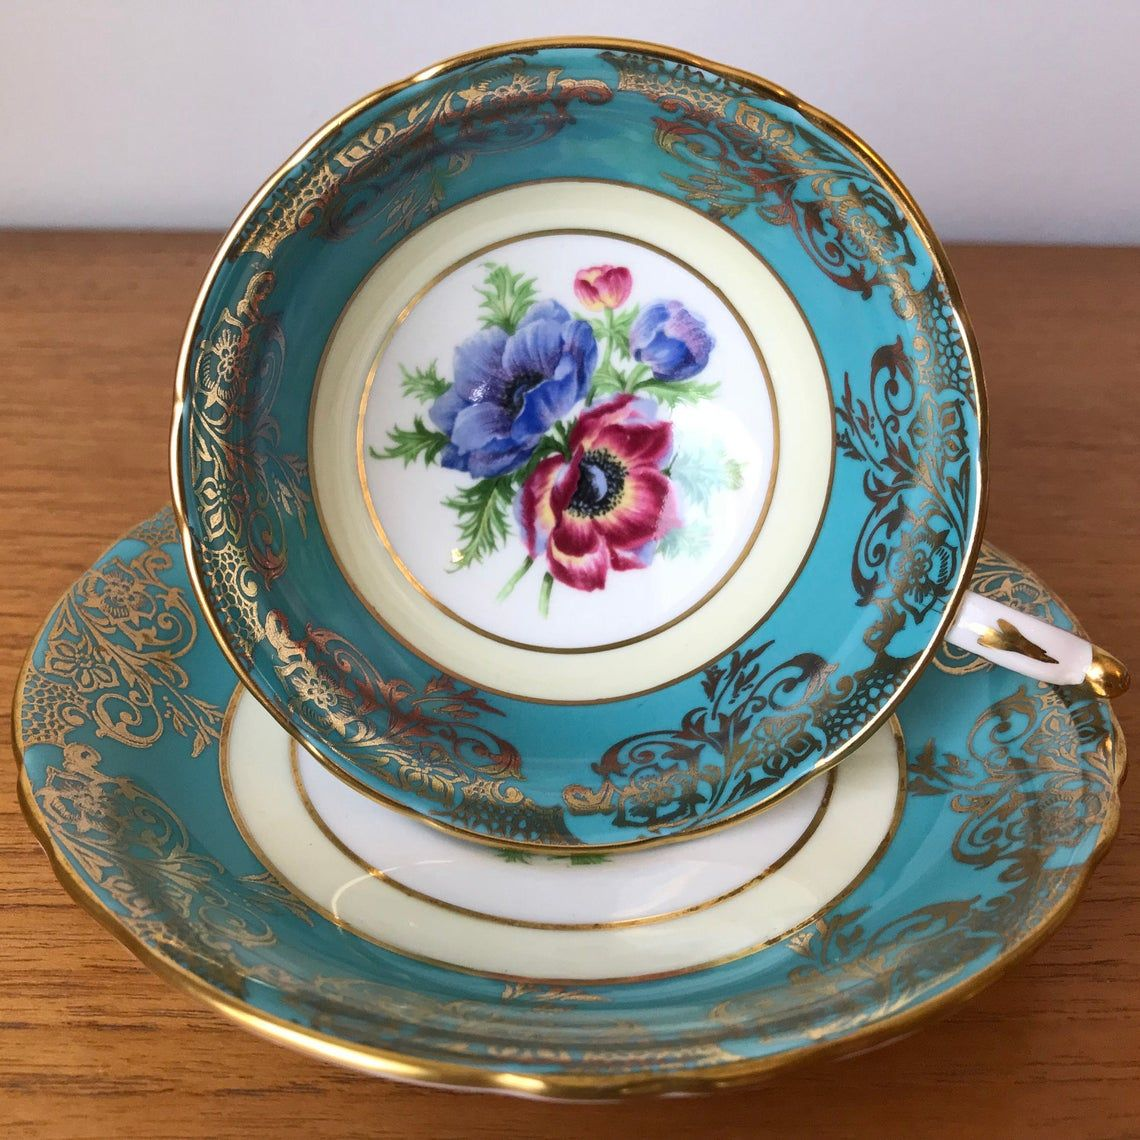 Paragon Poppy Tea Cup and Saucer, Anemones Tea Cup and Saucer, Turquoise and Gold Floral Bone China